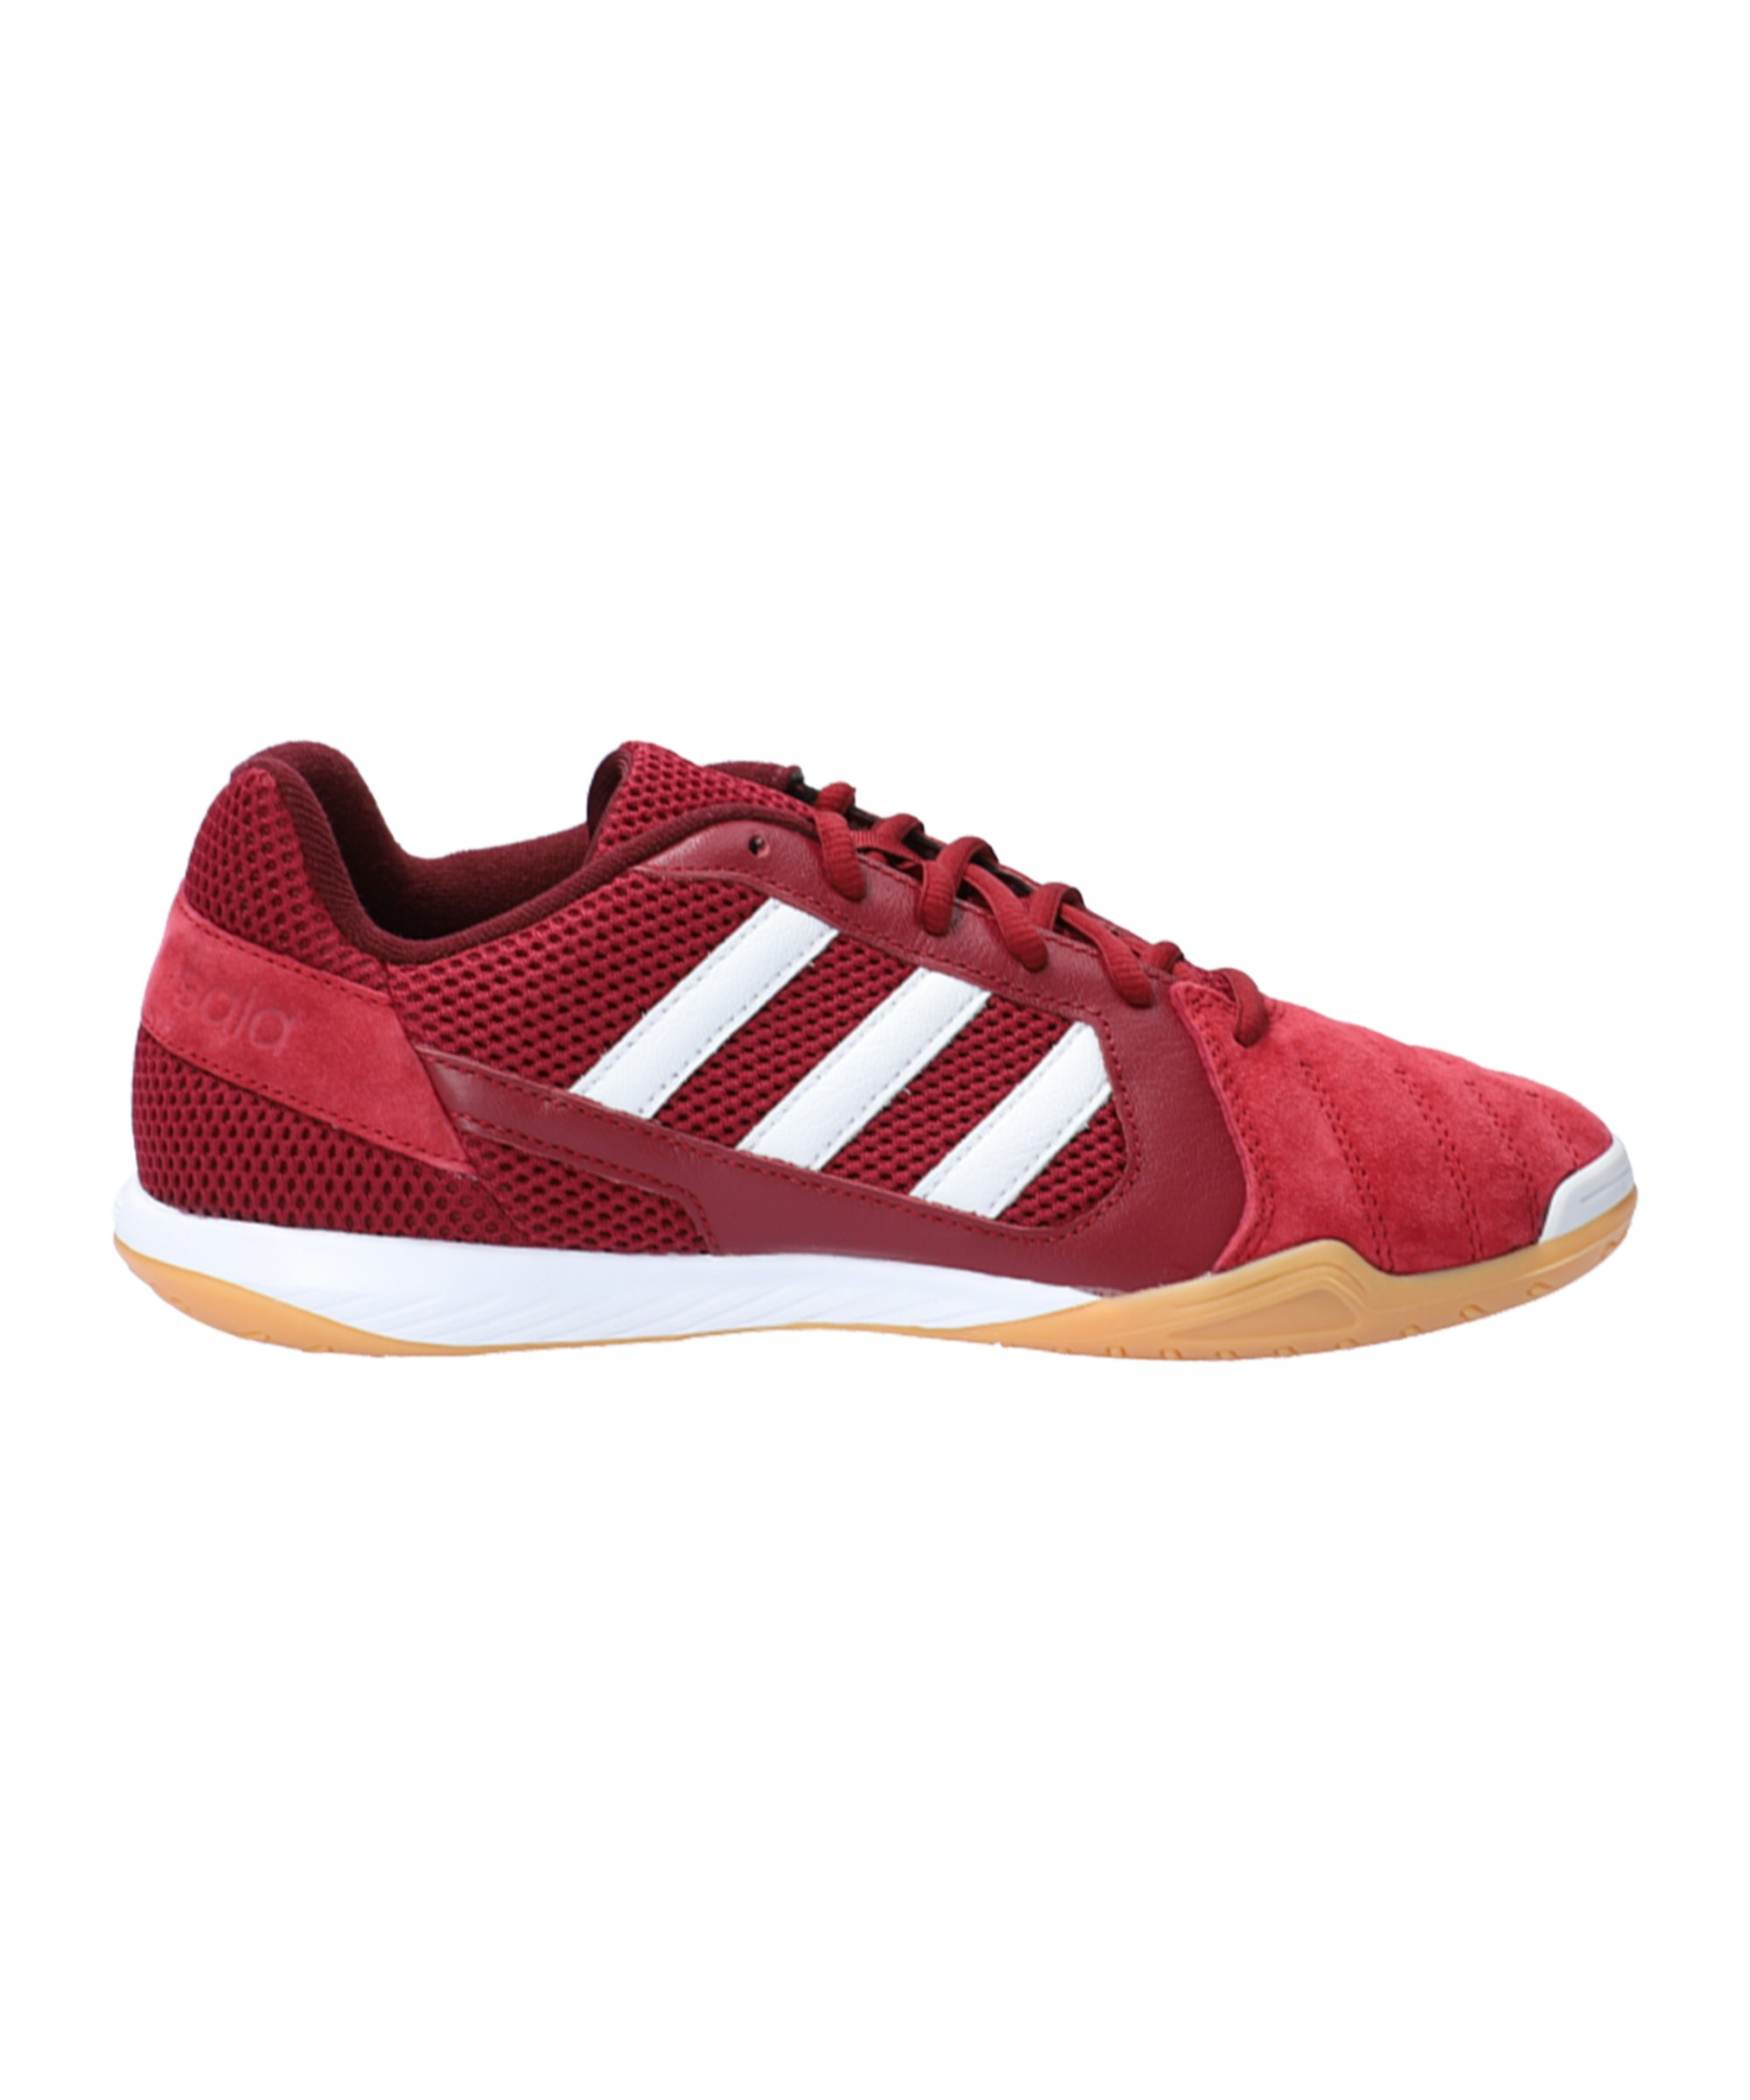 adidas Top Sala Lux IN Halle Rot - rot